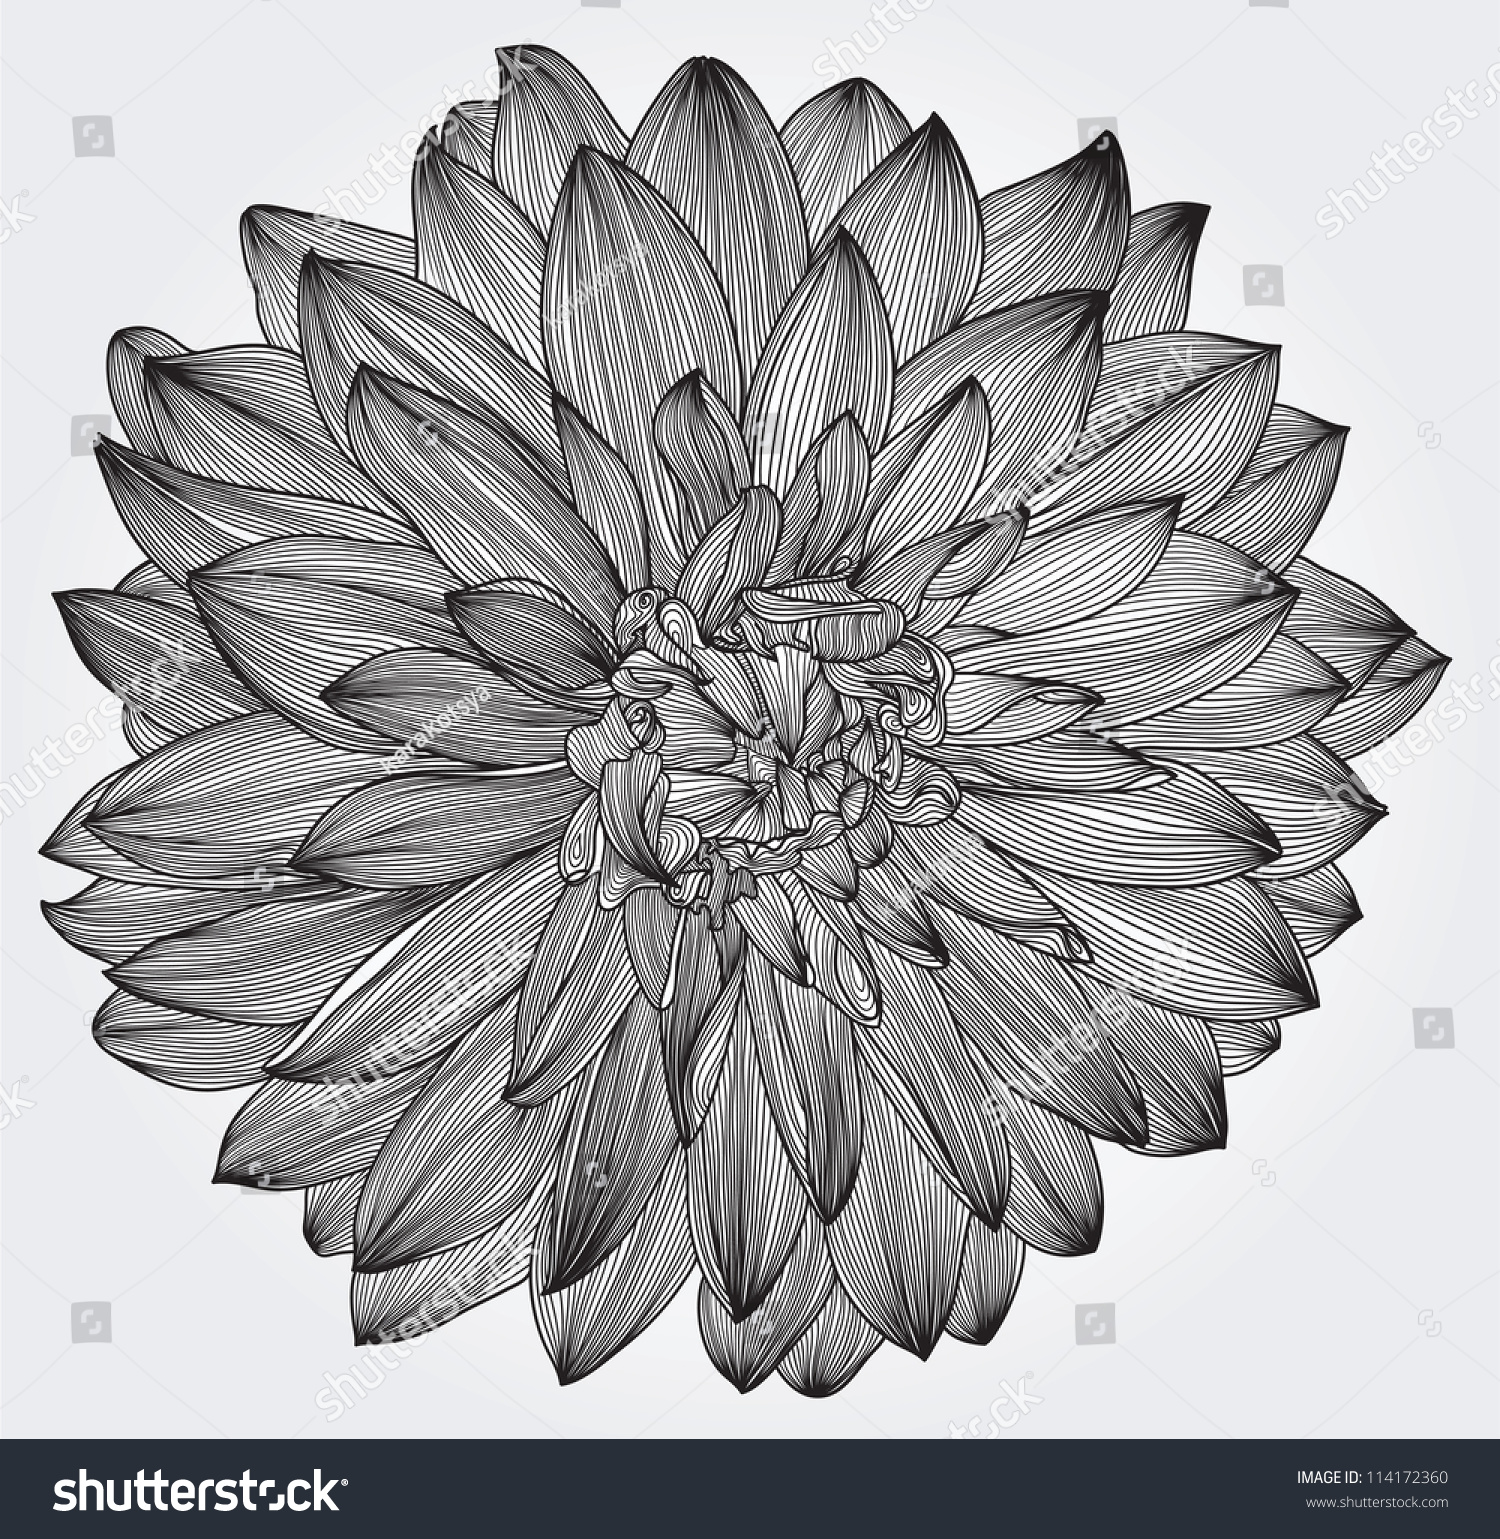 Ink drawing black dahlia flower element stock illustration 114172360 ink drawing of black dahlia flower element for your design engraving style raster izmirmasajfo Gallery